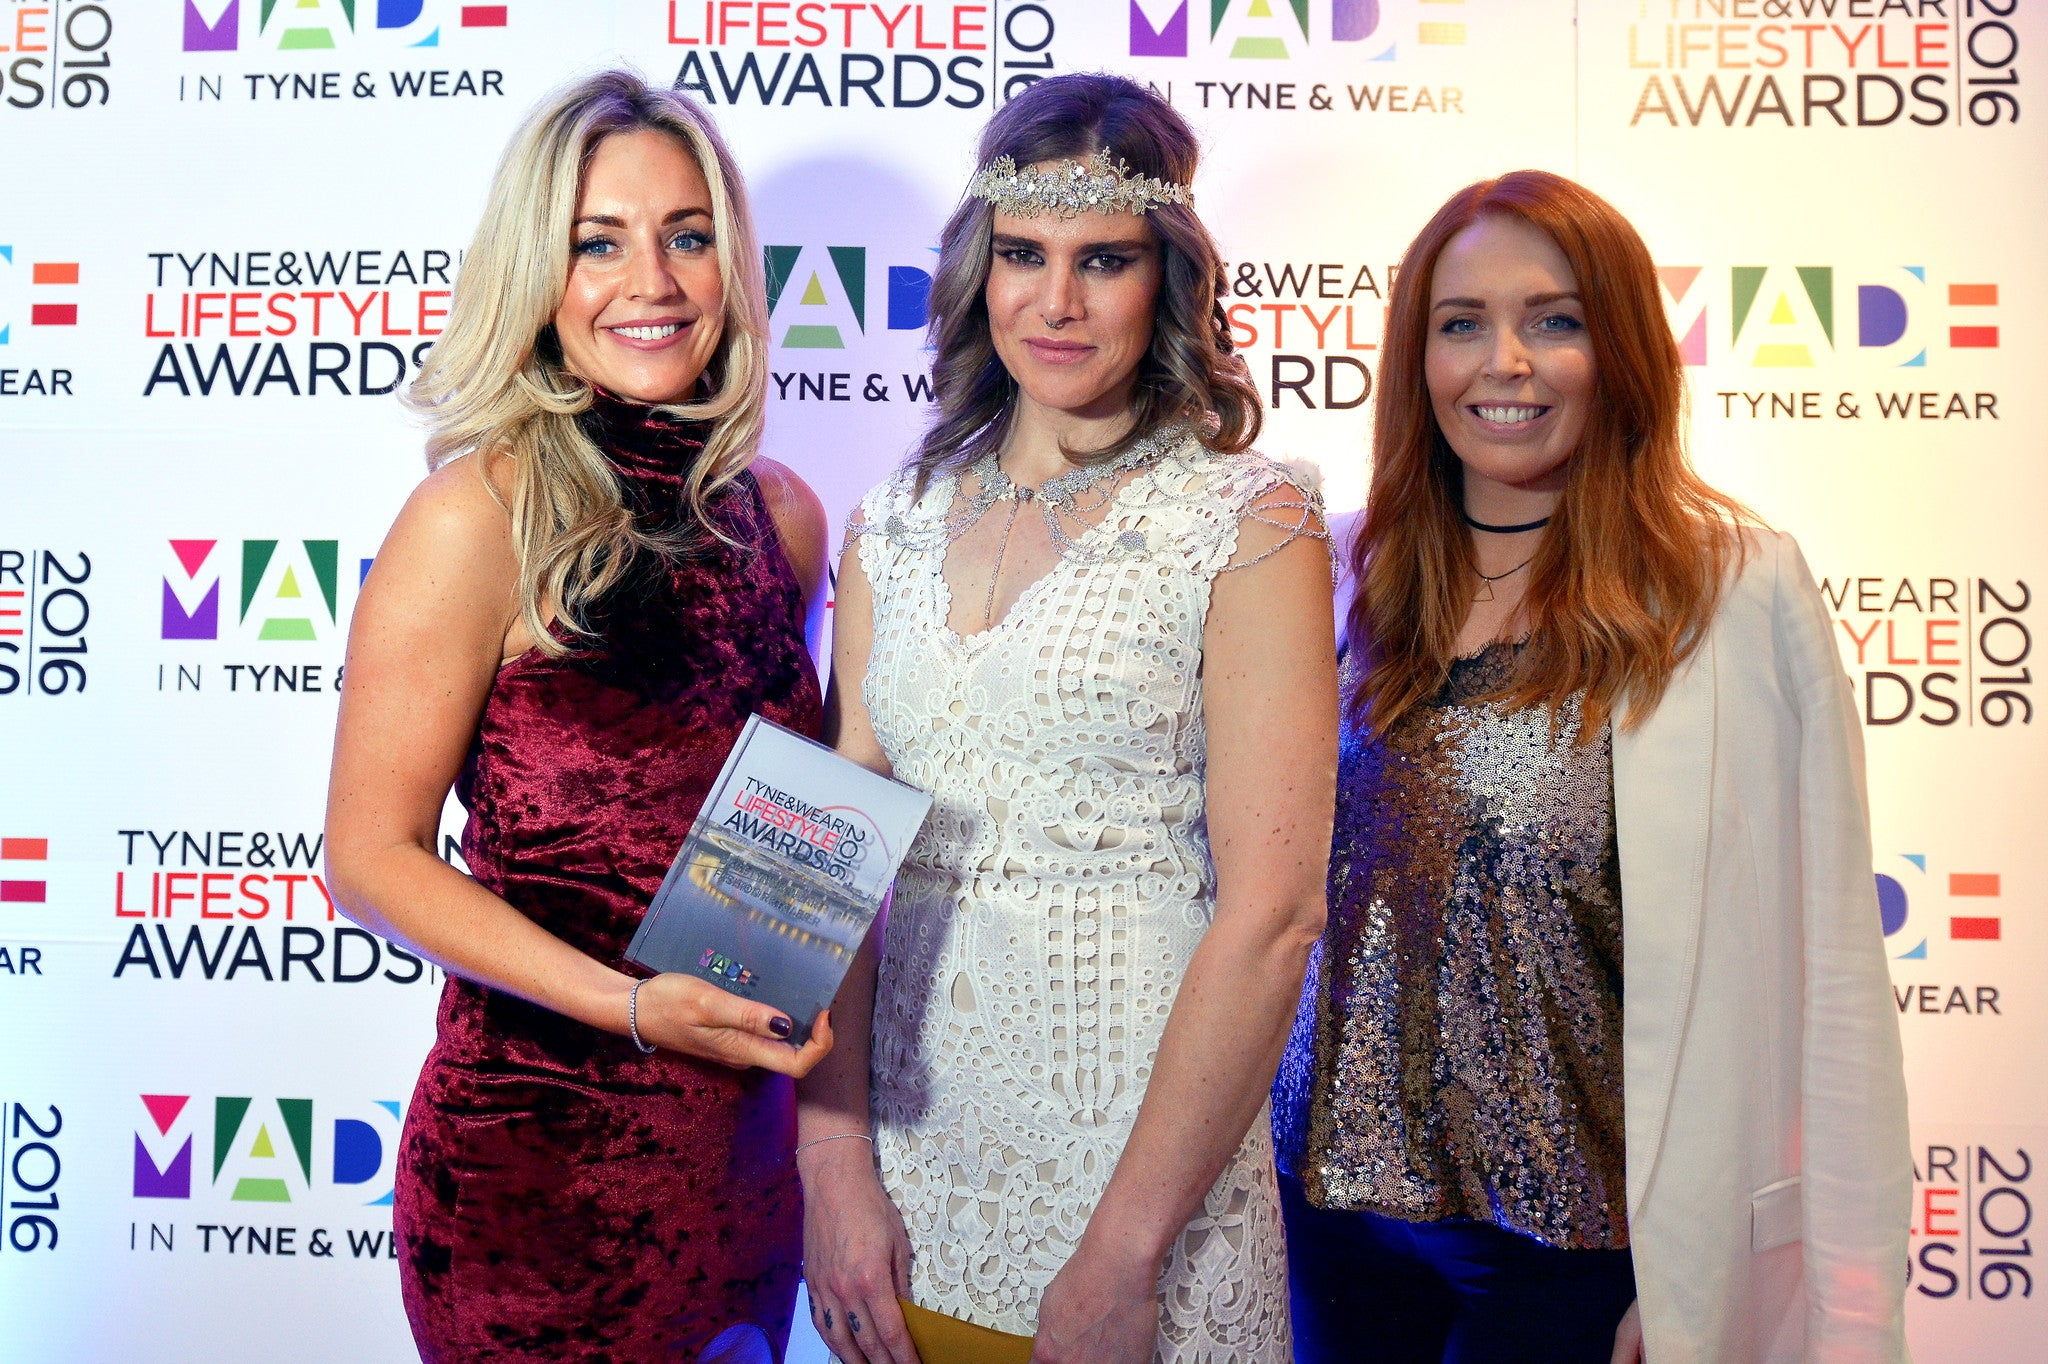 Havetolove wins Made in Tyne & Wear lifestyle Best Retailer Award